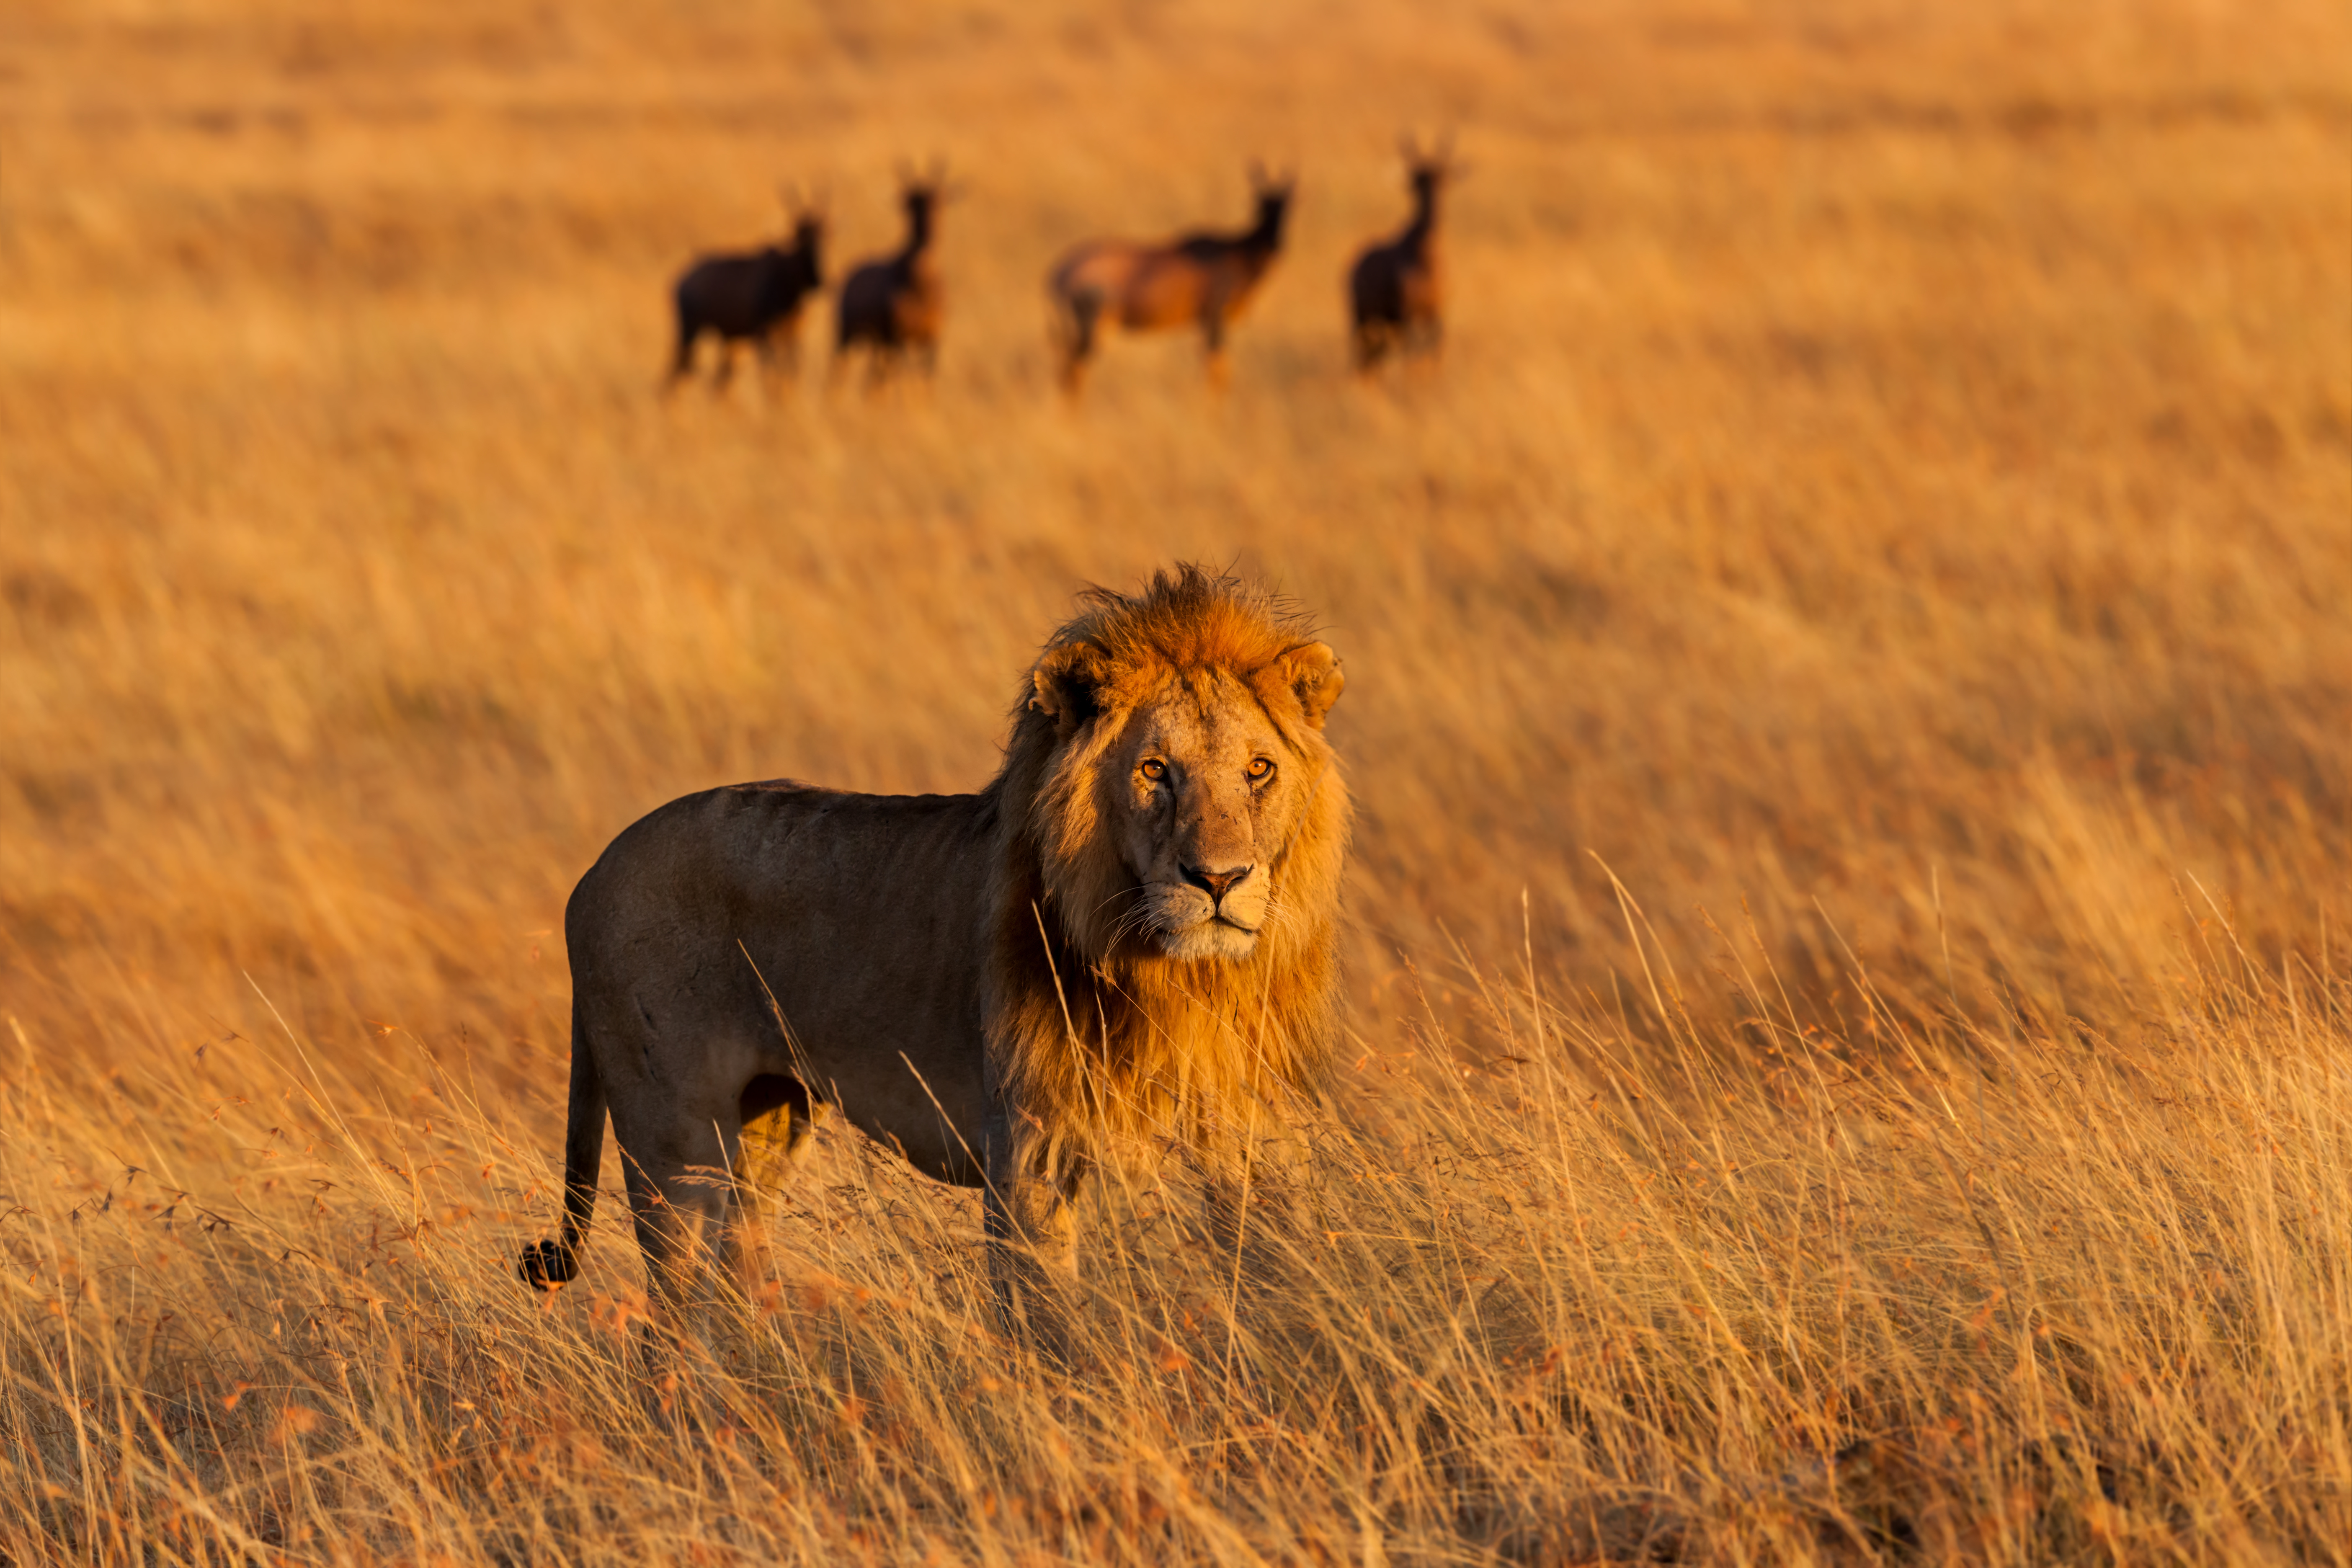 Lion The King In The Savannah Of Africa Stock Photo, Picture And ...